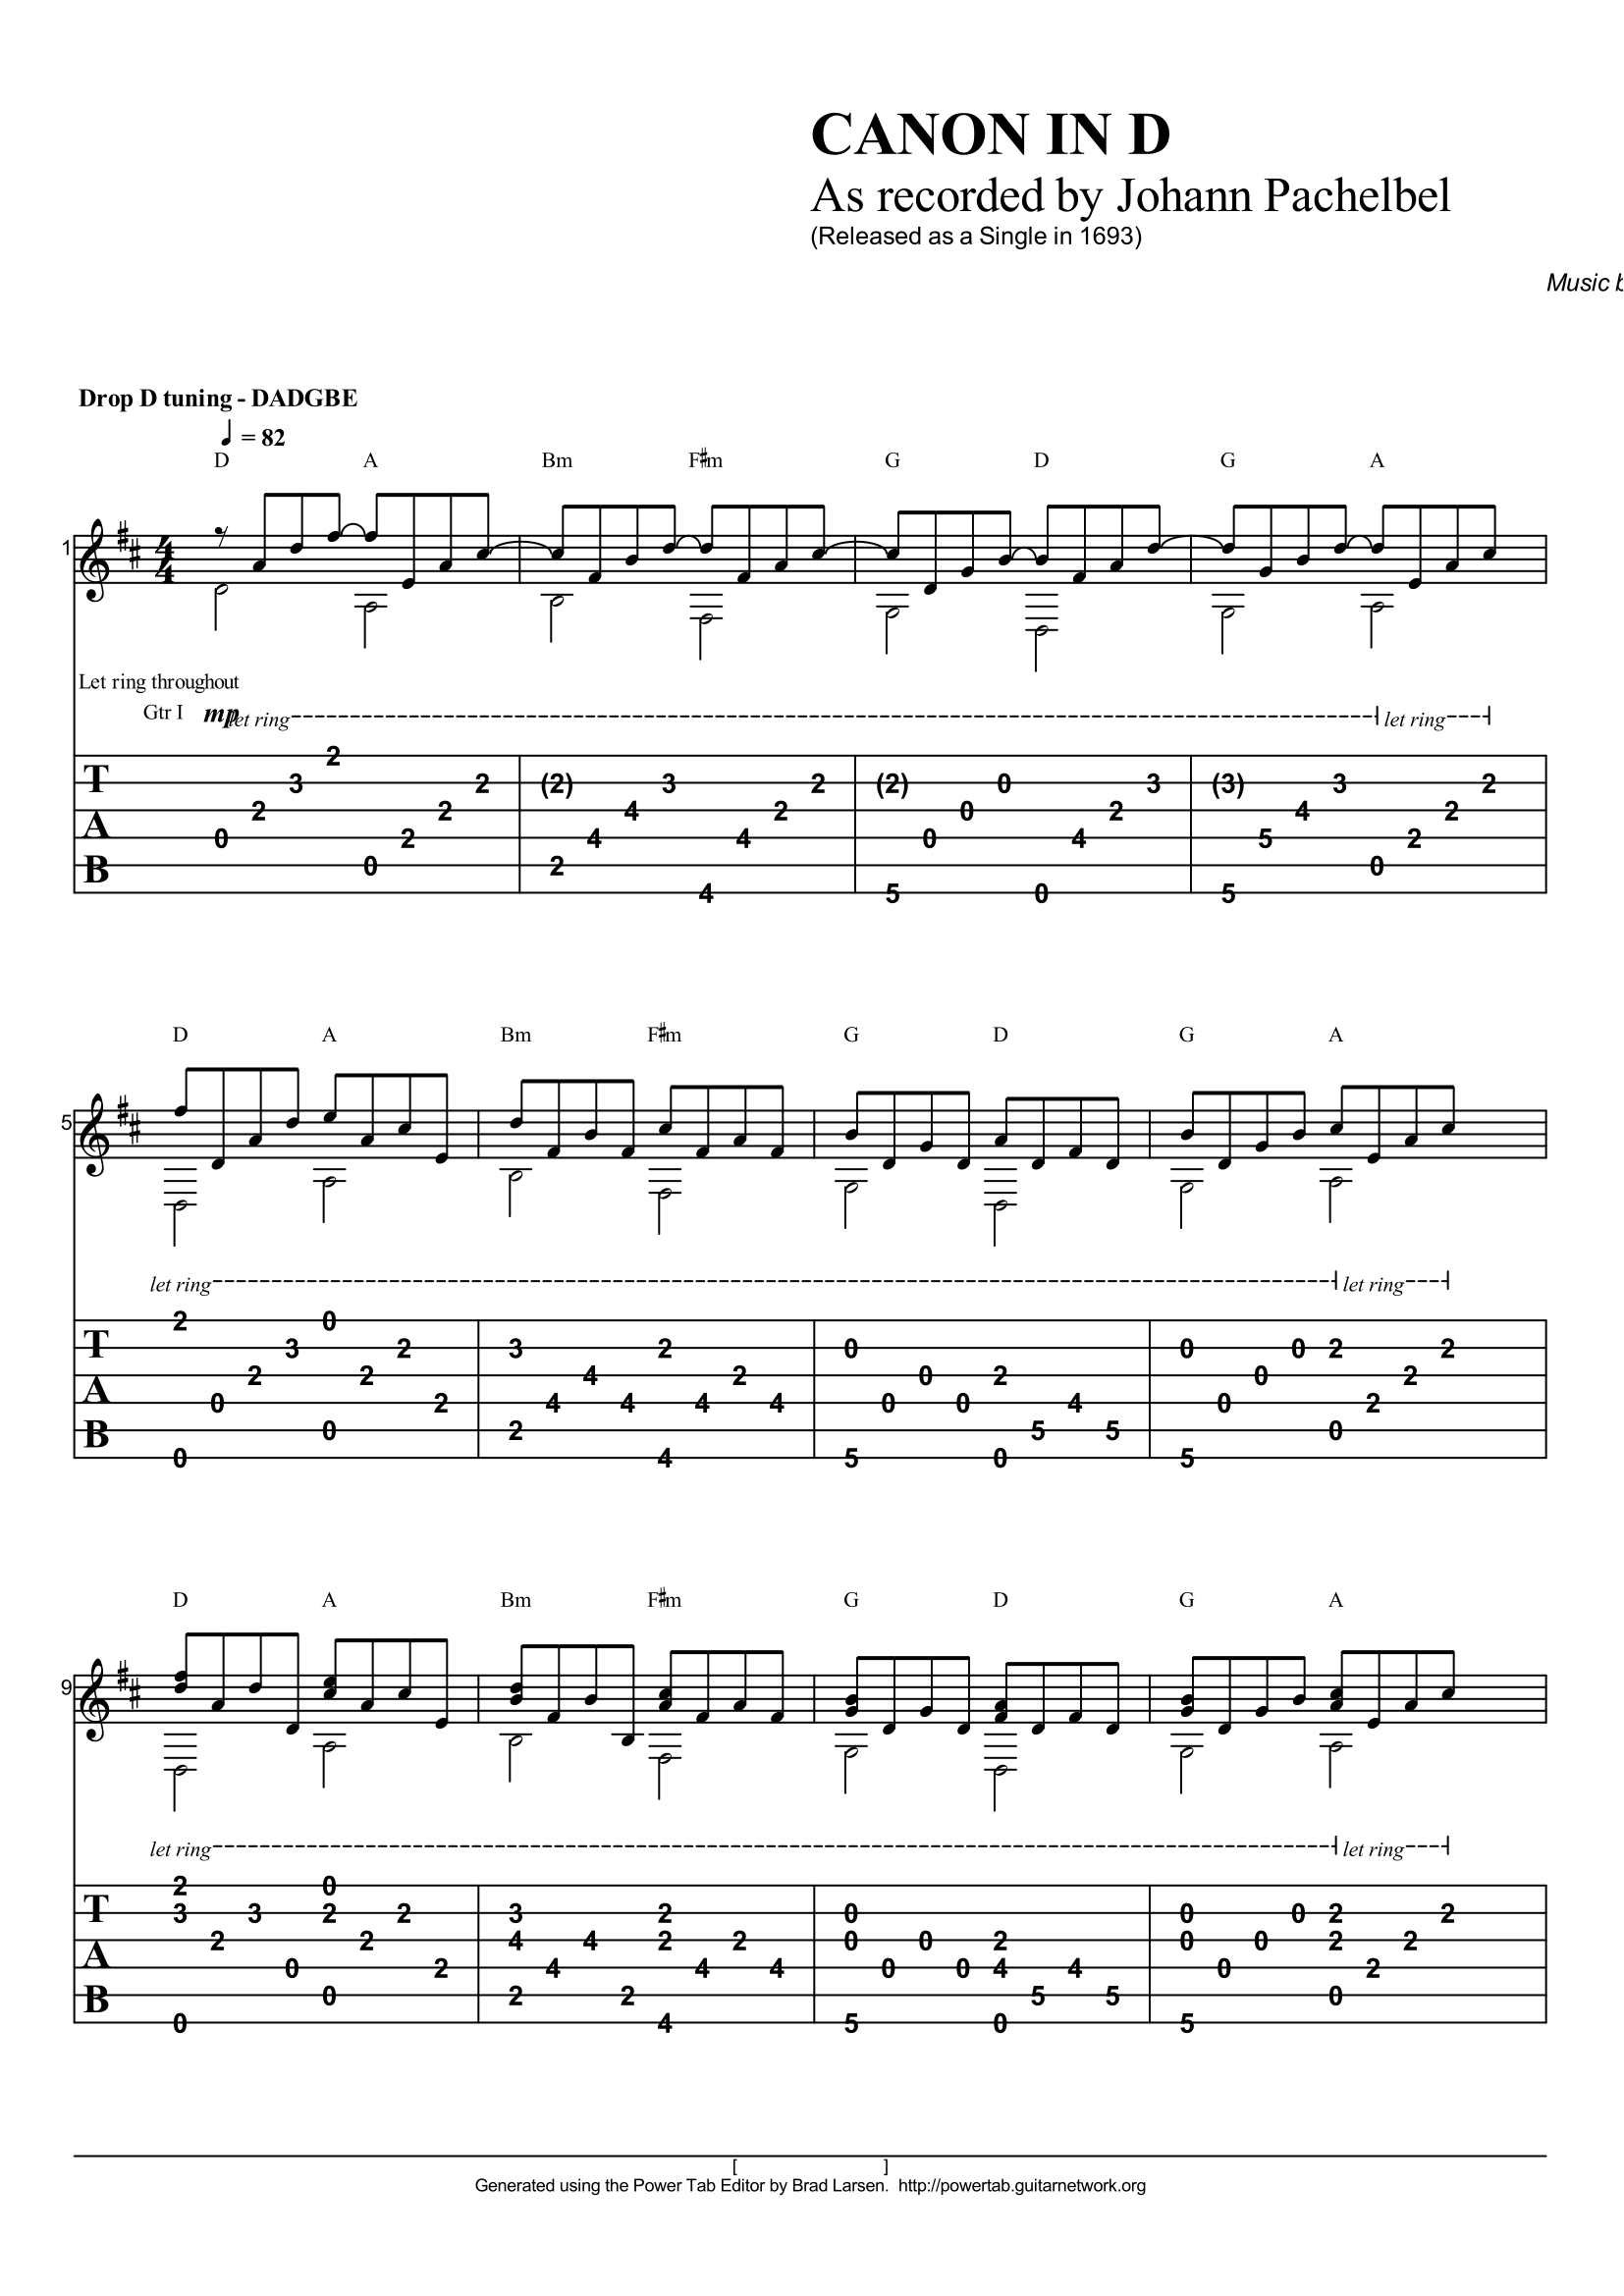 Similiar Tablature Canon In D Keywords